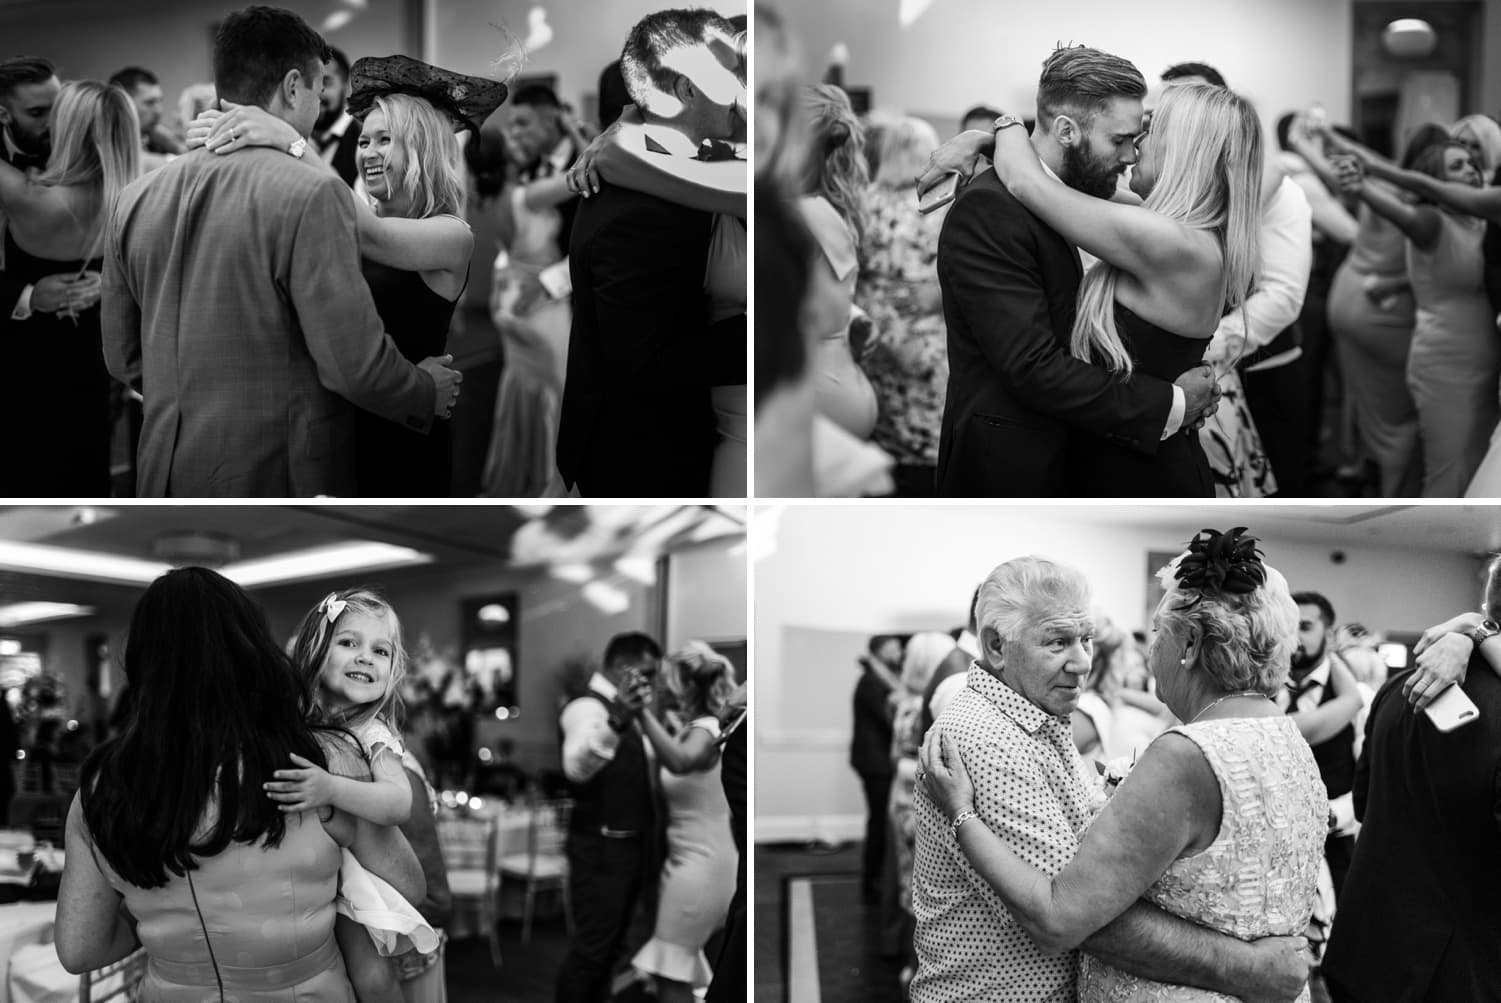 Wedding dancing at Hensol Castle in South Wales